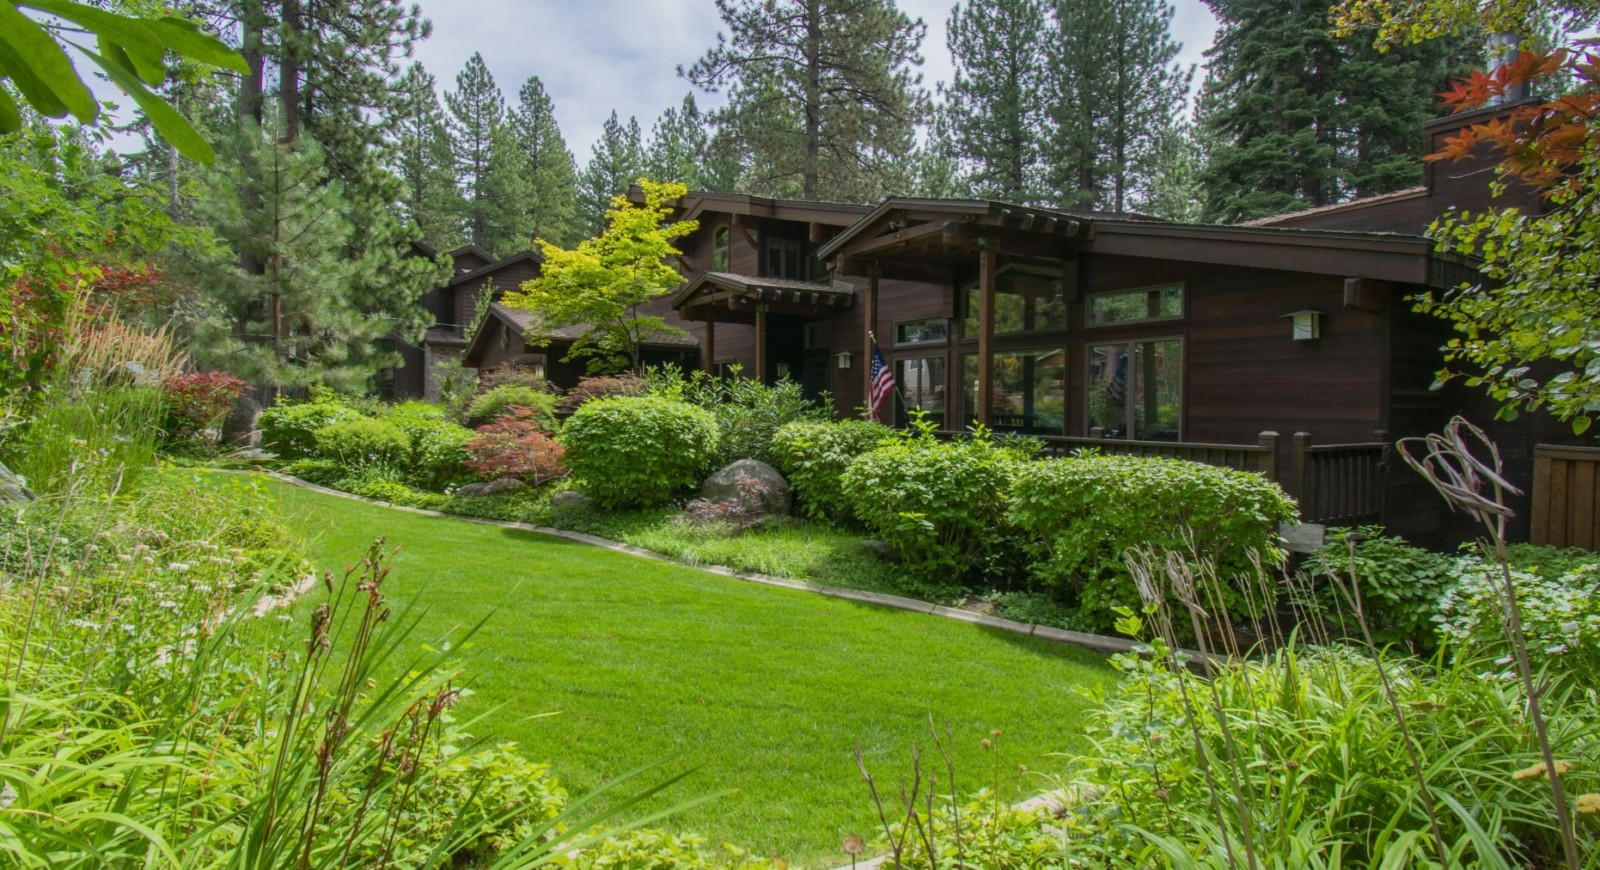 Lake Tahoe real estate: Here's what a few million dollars can get you 4